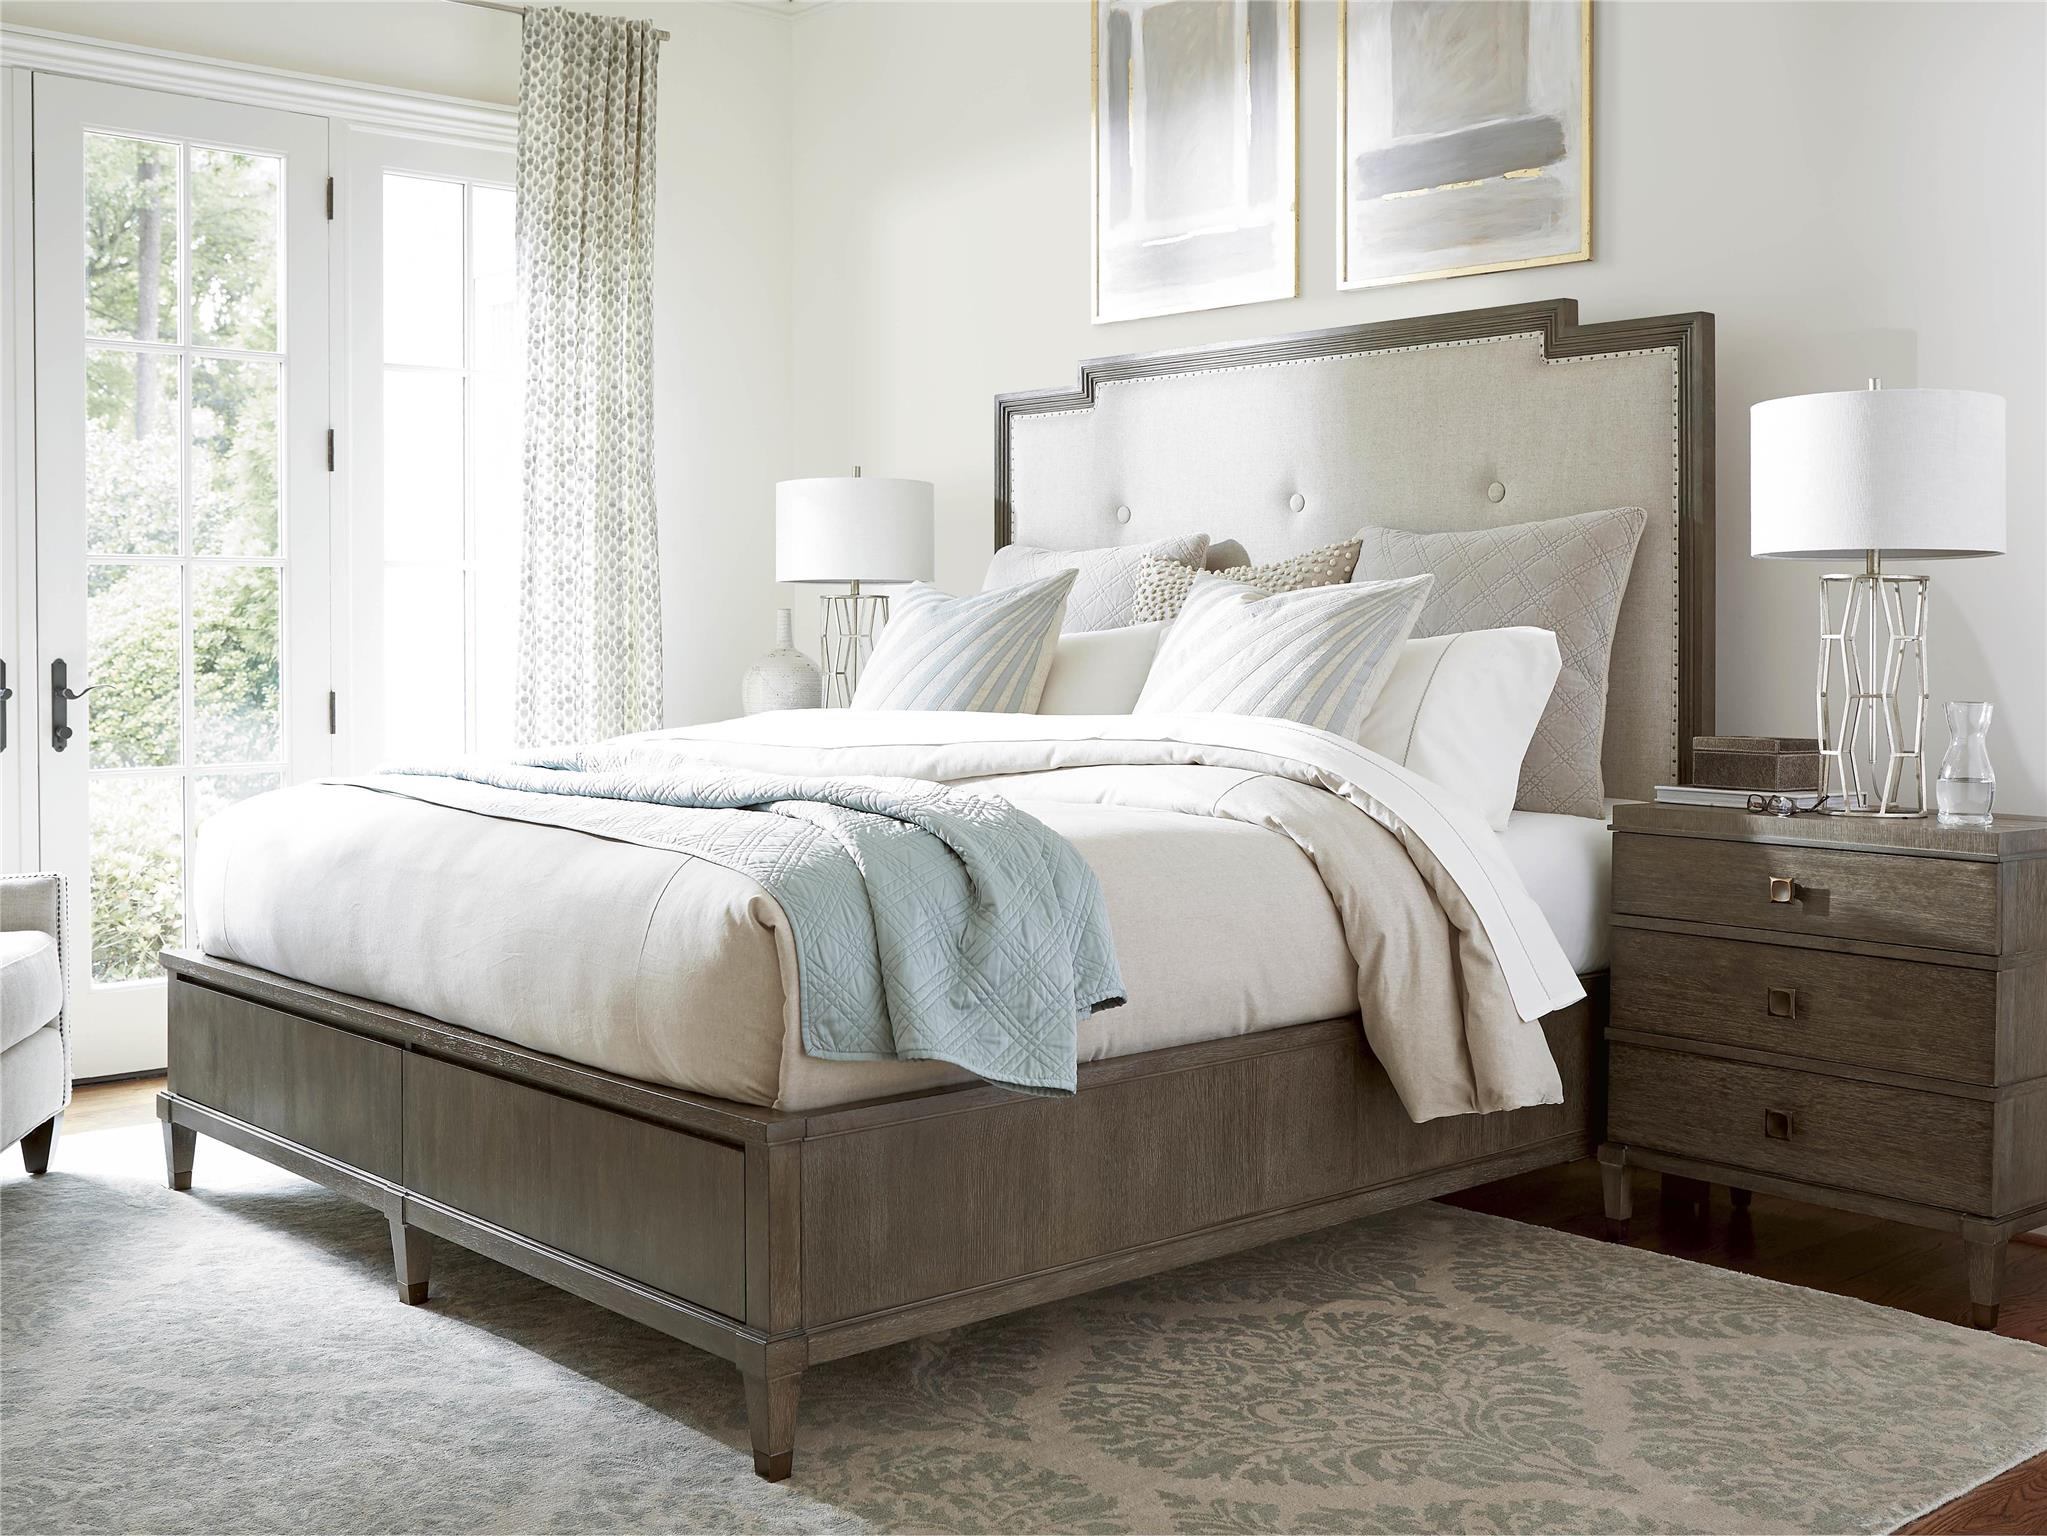 Harmony Bed with Storage (King). Loading zoom : bedding storage furniture  - Aquiesqueretaro.Com